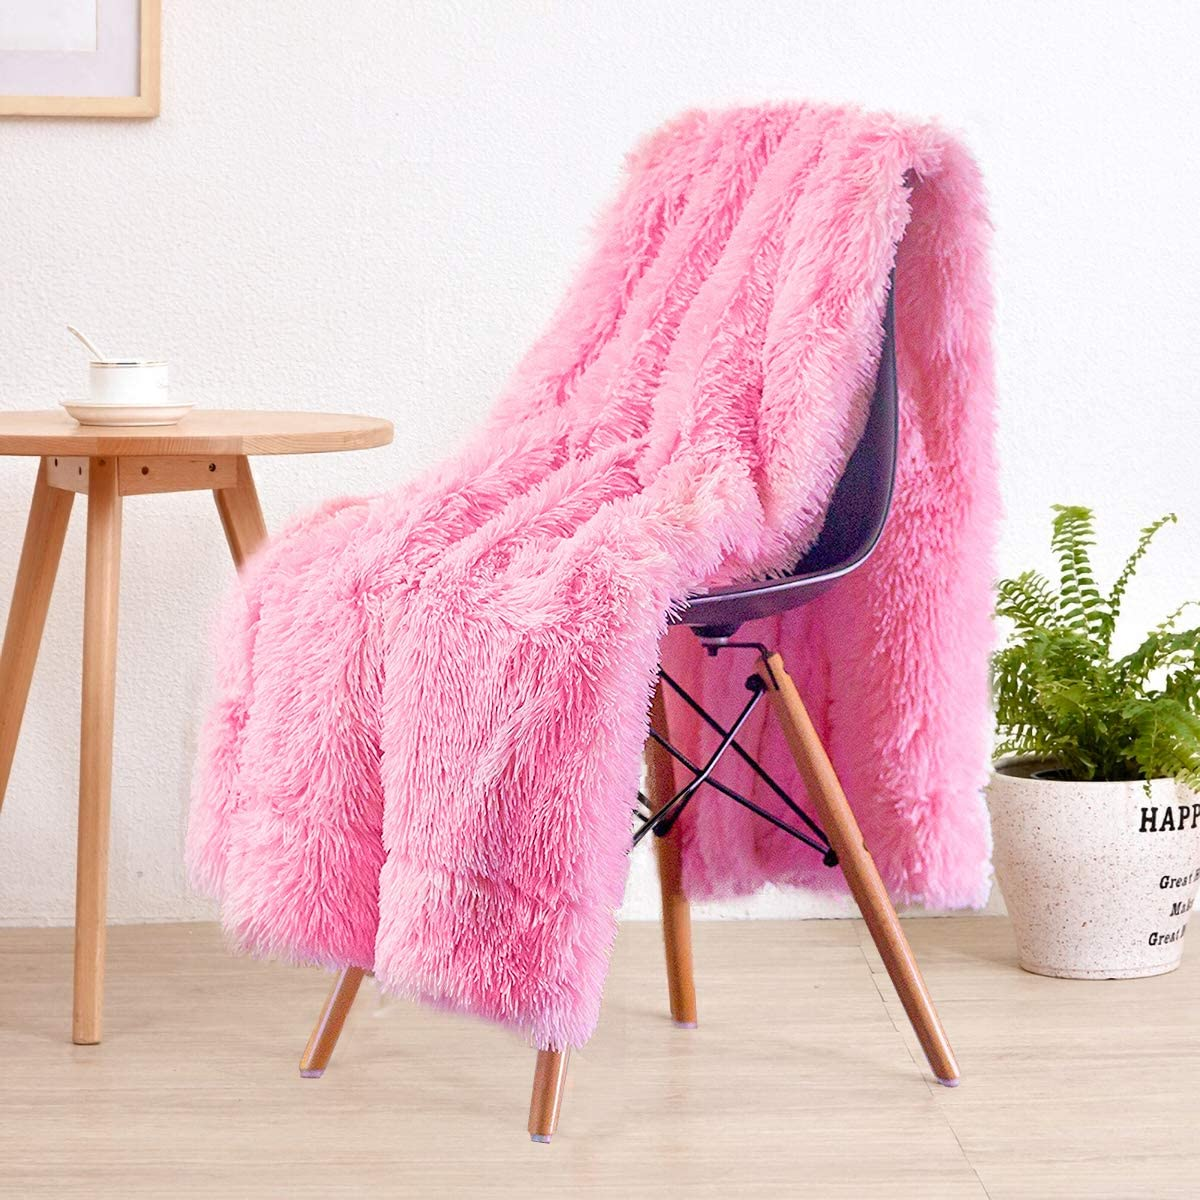 """LOCHAS Super Soft Shaggy Faux Fur Blanket, Plush Fuzzy Bed Throw Decorative Washable Cozy Sherpa Fluffy Blankets for Couch Chair Sofa (Pink 50"""" x 60"""")"""